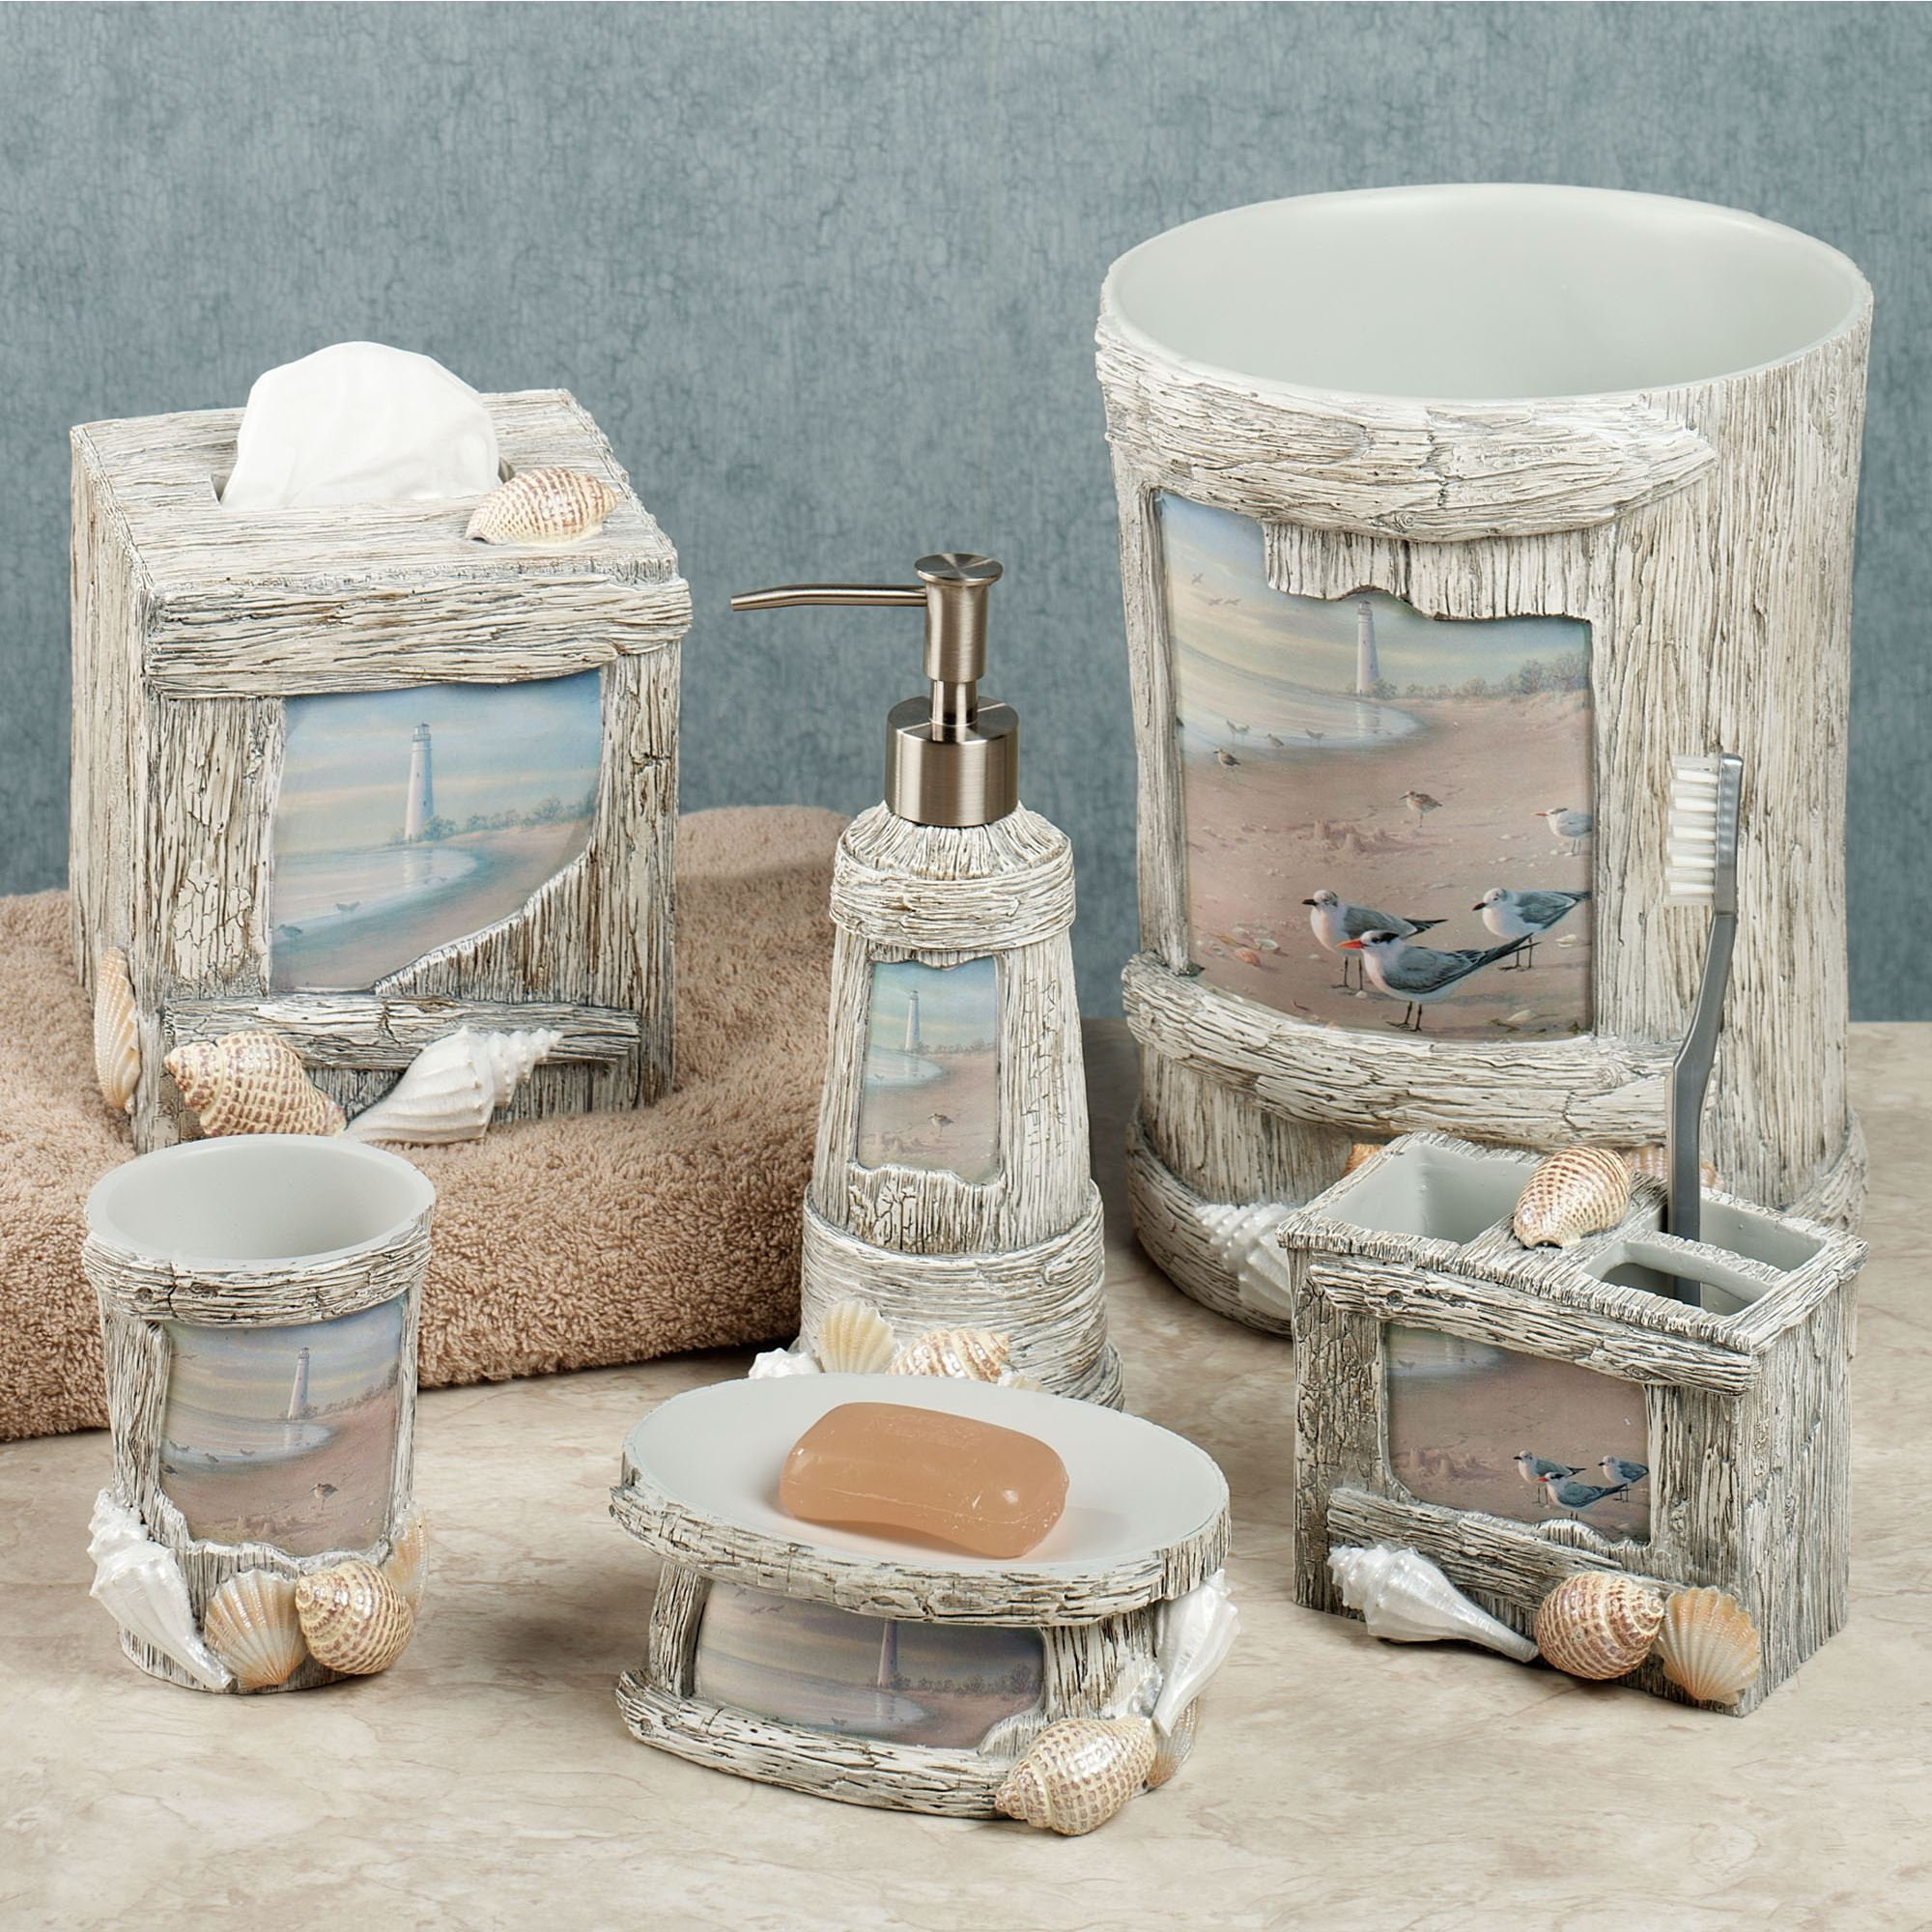 At the beach bath accessories for Items for bathroom